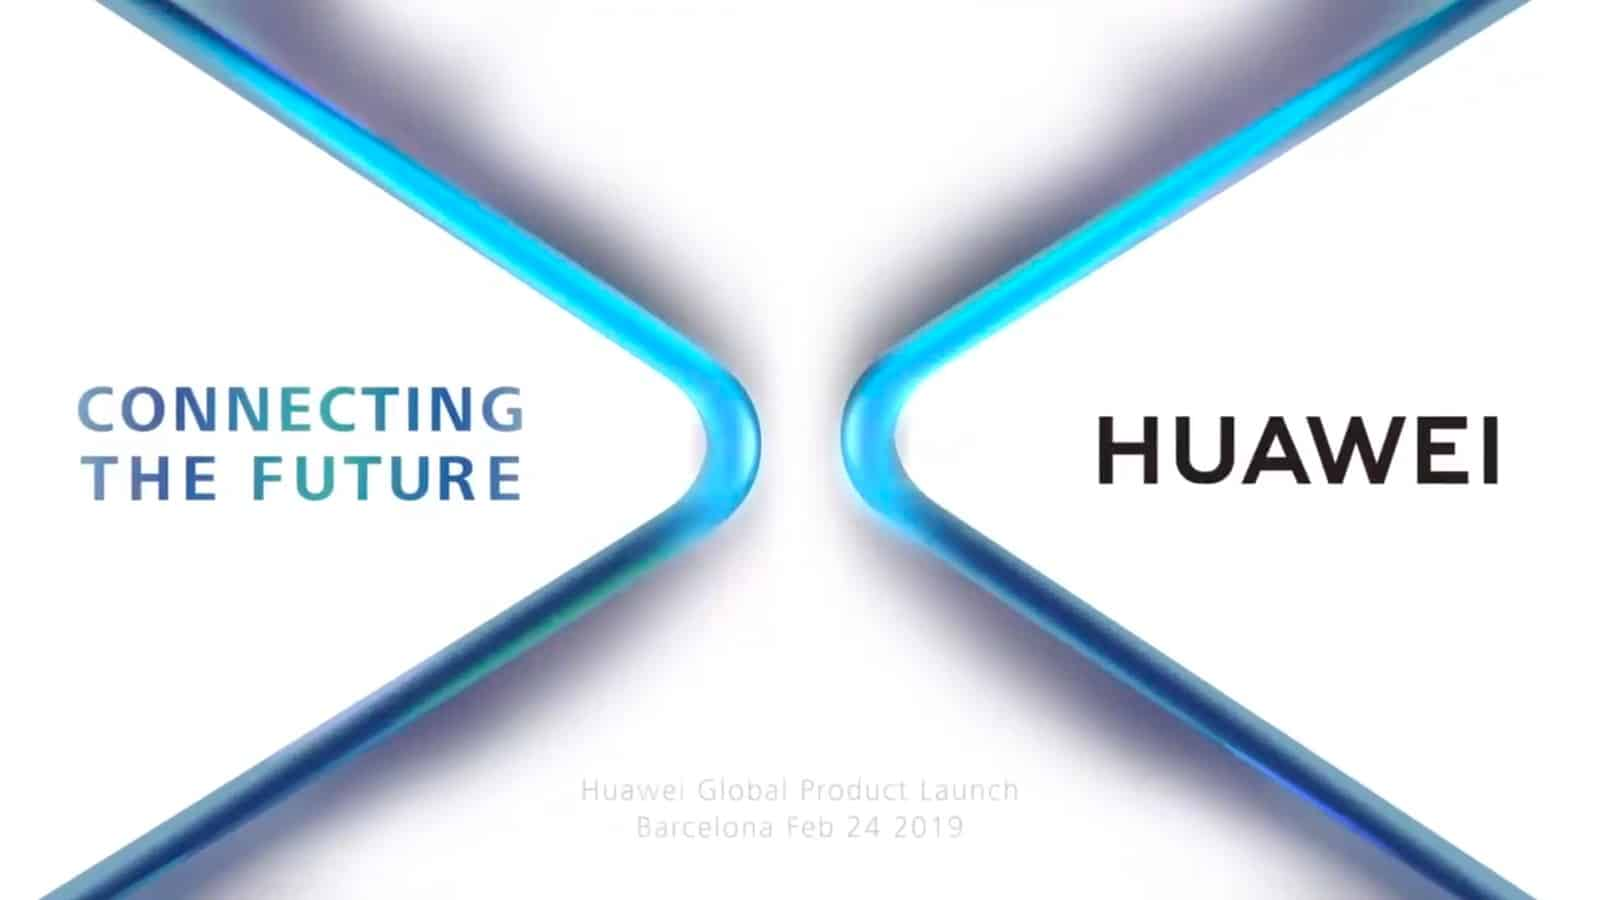 Huawei Connecting The Future teaser 1